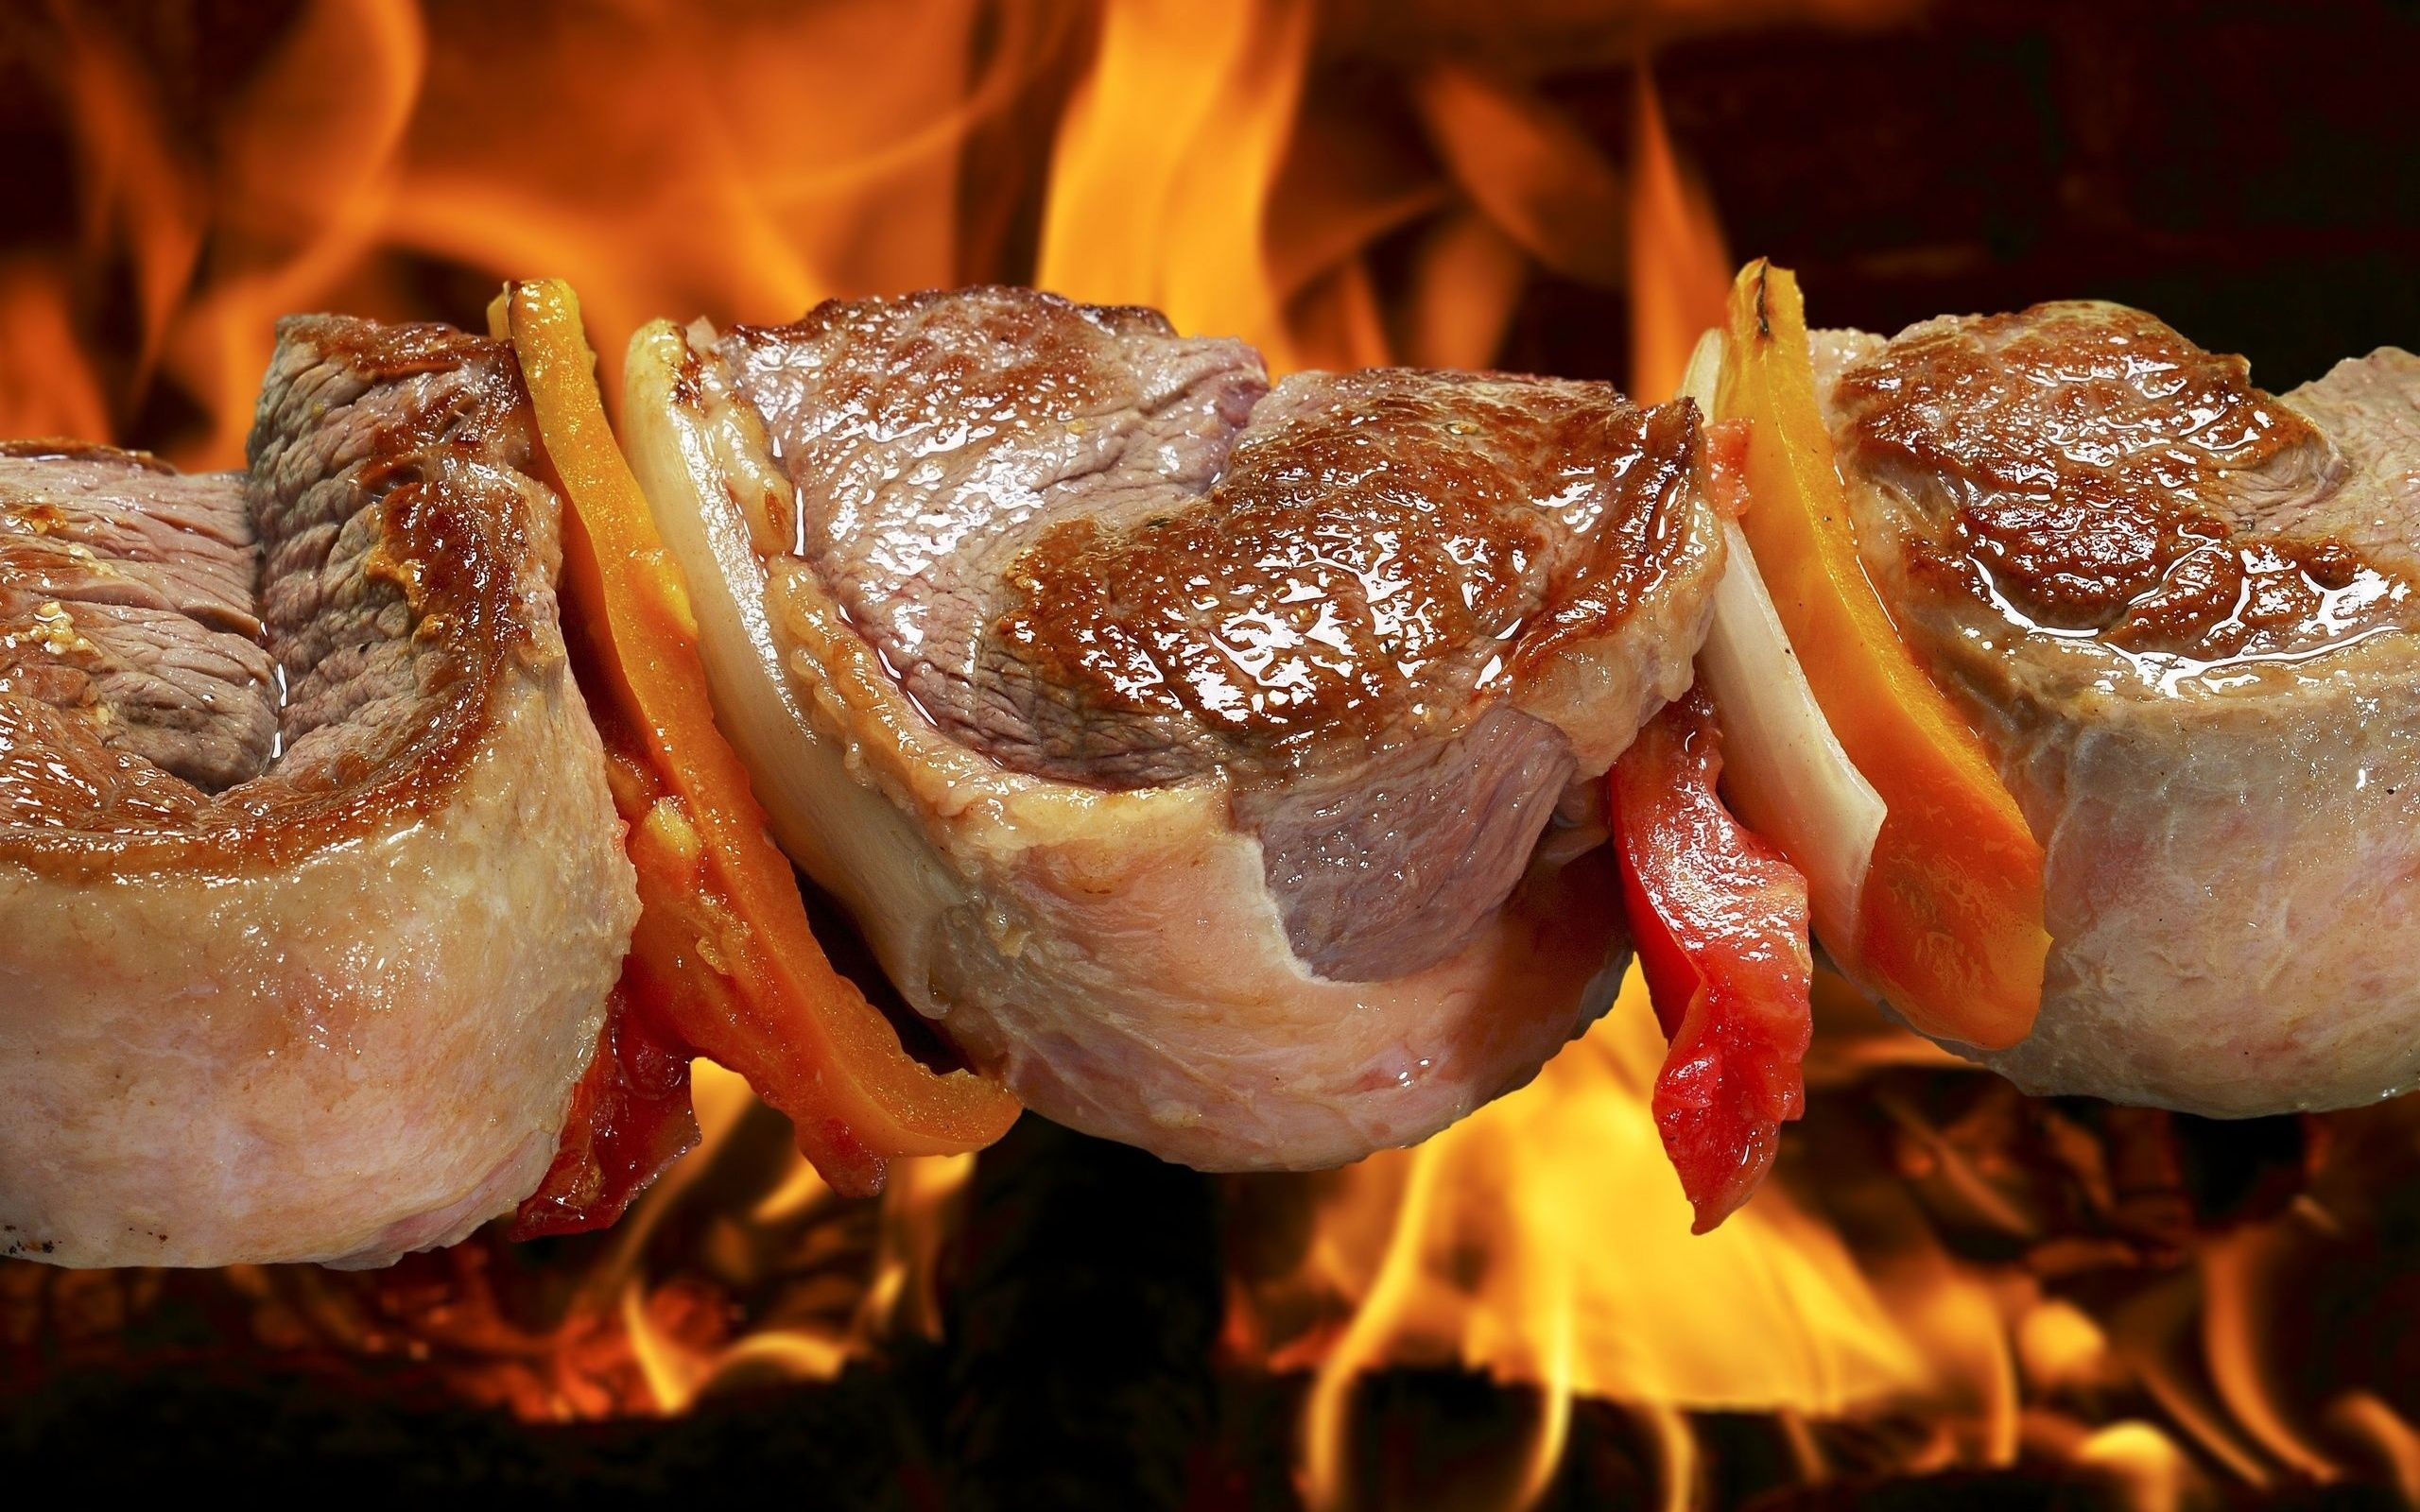 2560x1600 Barbecue Wallpapers and Background Images - stmed.net